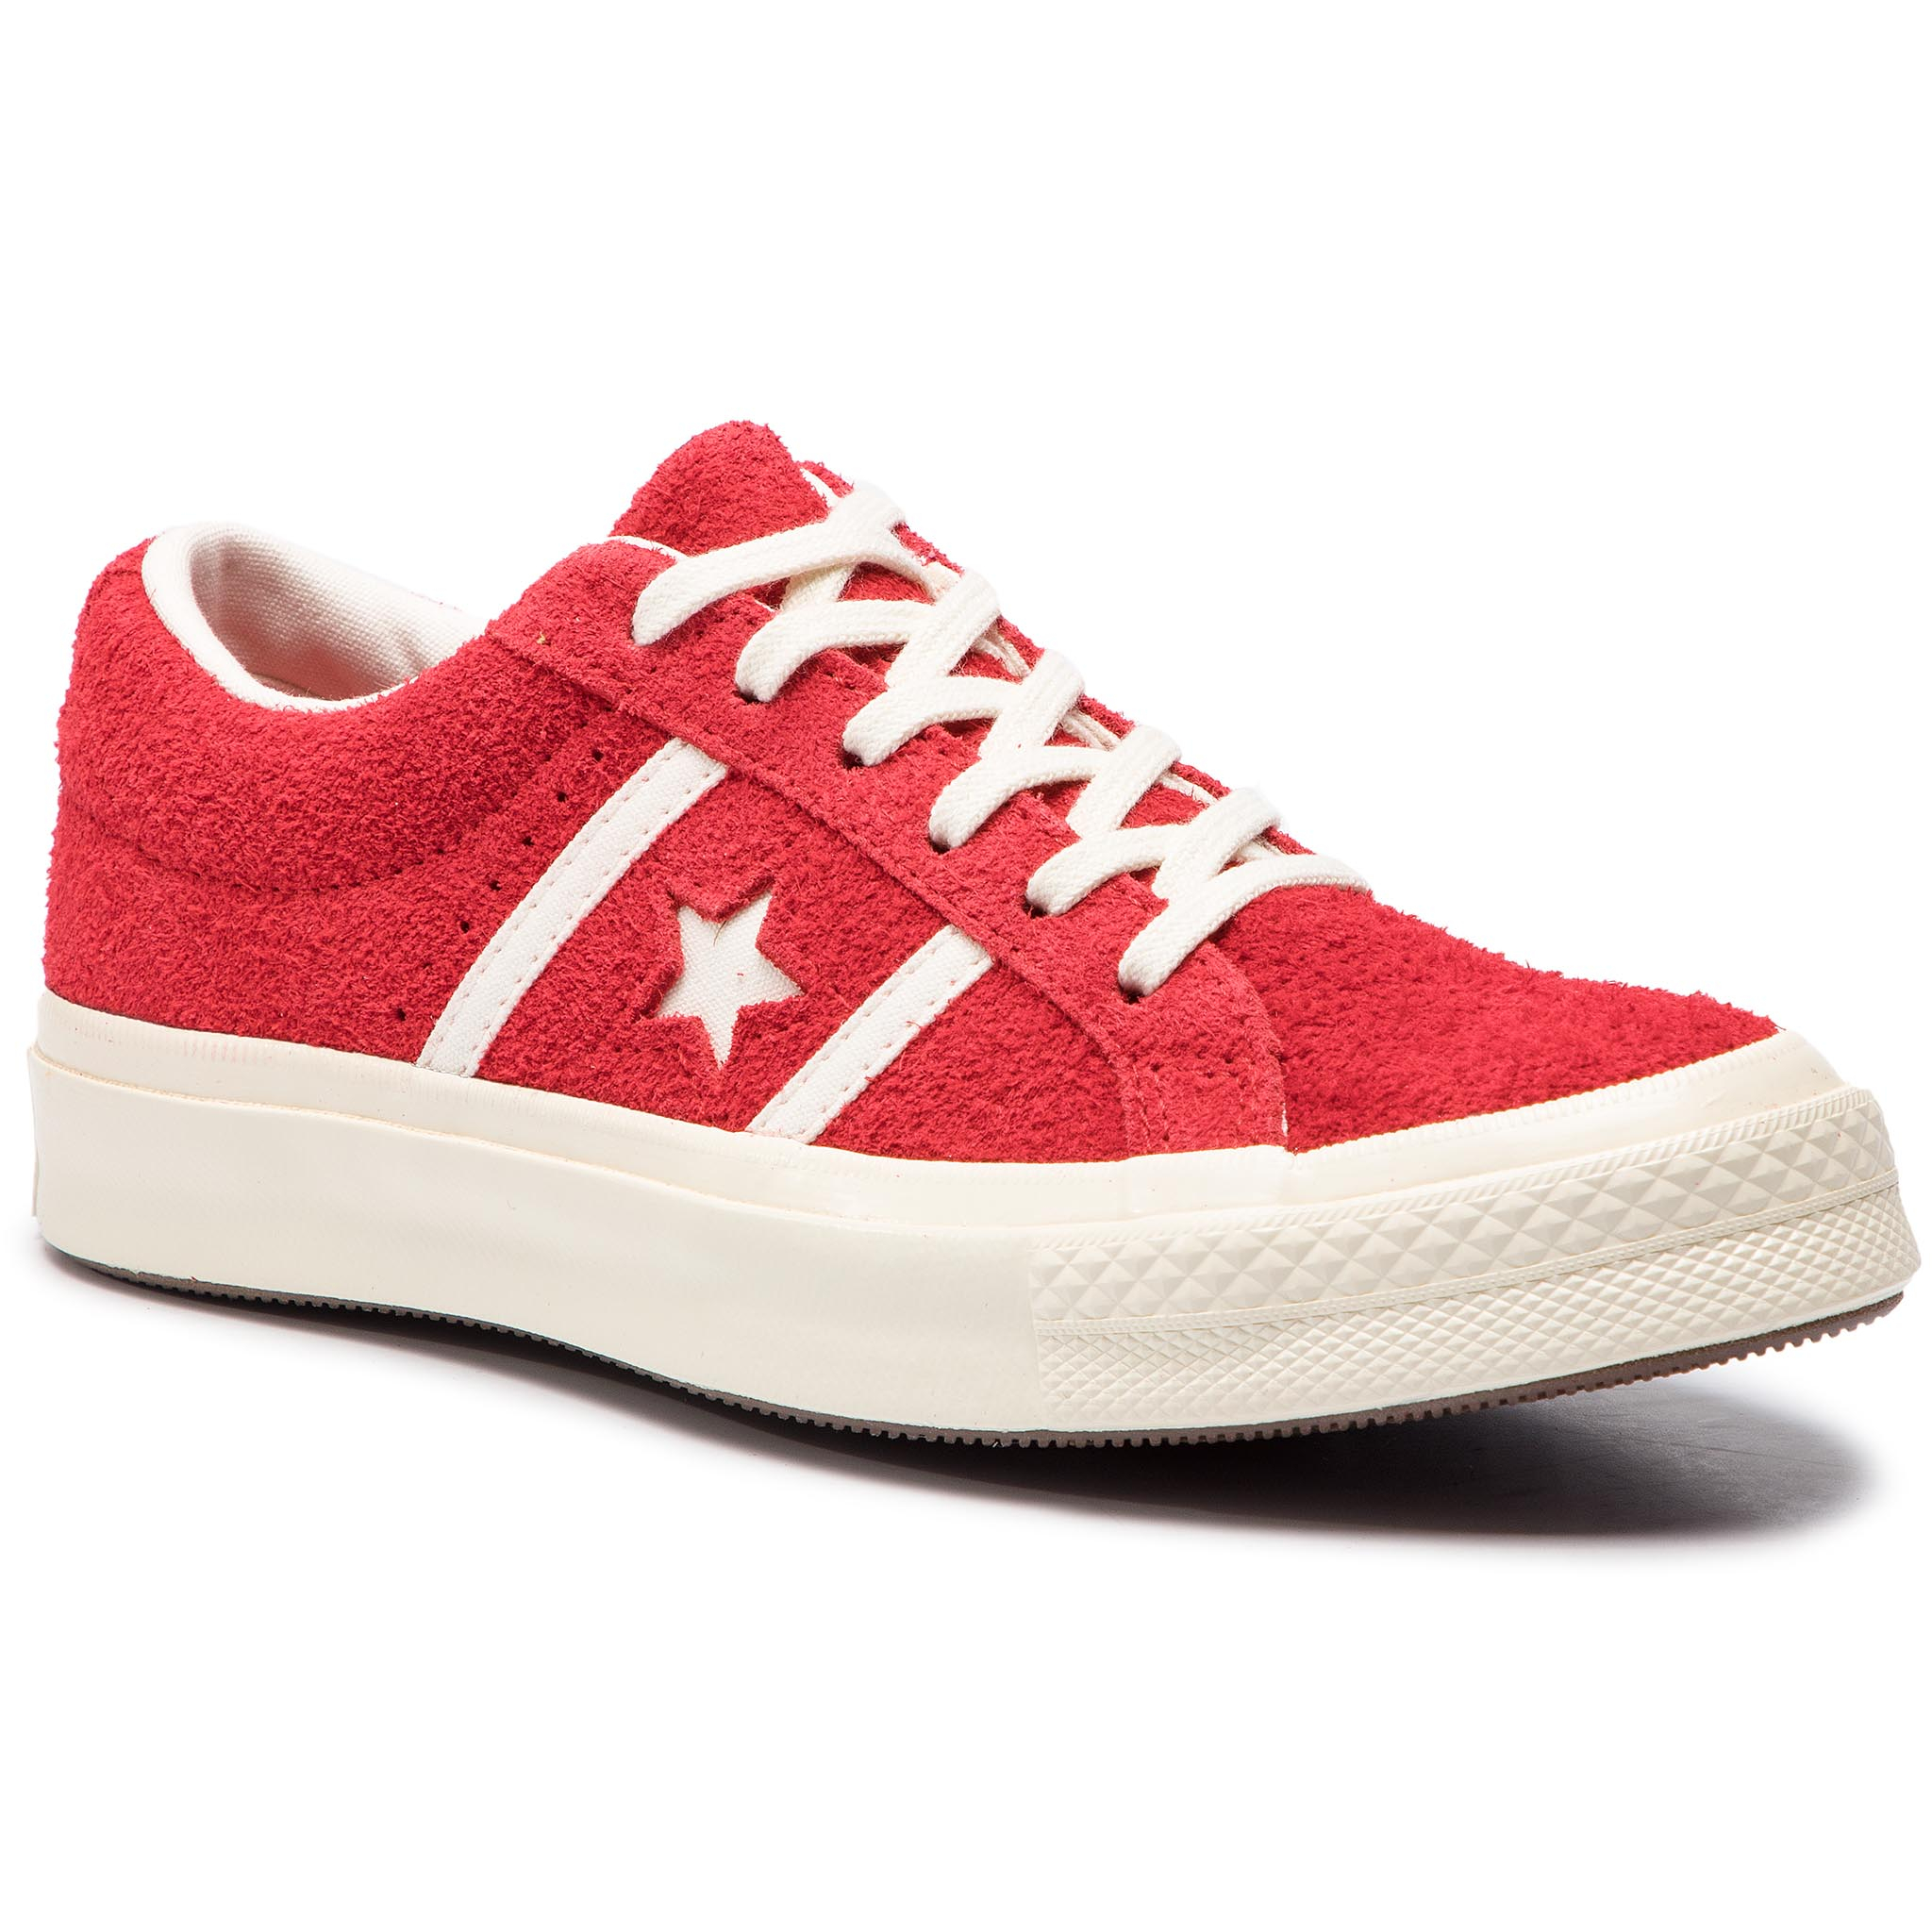 Sneakersy CONVERSE – One Star Academy Ox 163270C Enamel Red/Egret/Egret